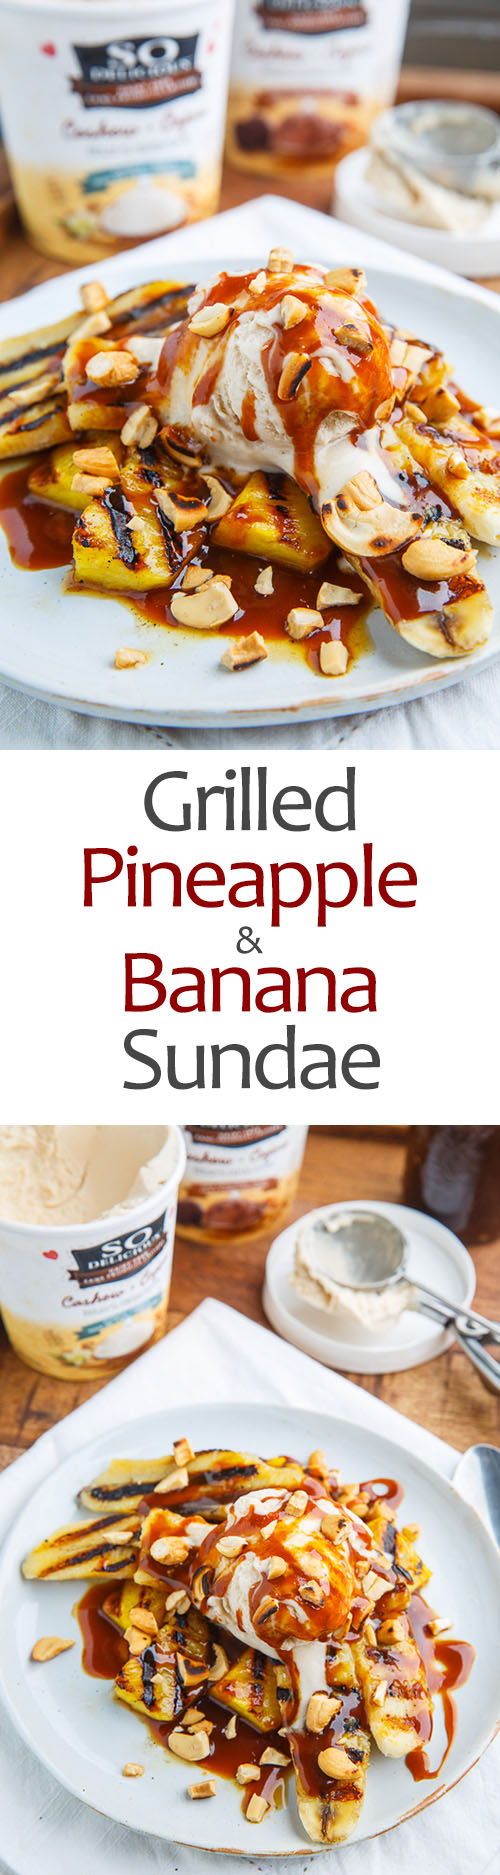 Grilled Pineapple and Banana Sundaes with Caramel Sauce and Cashews